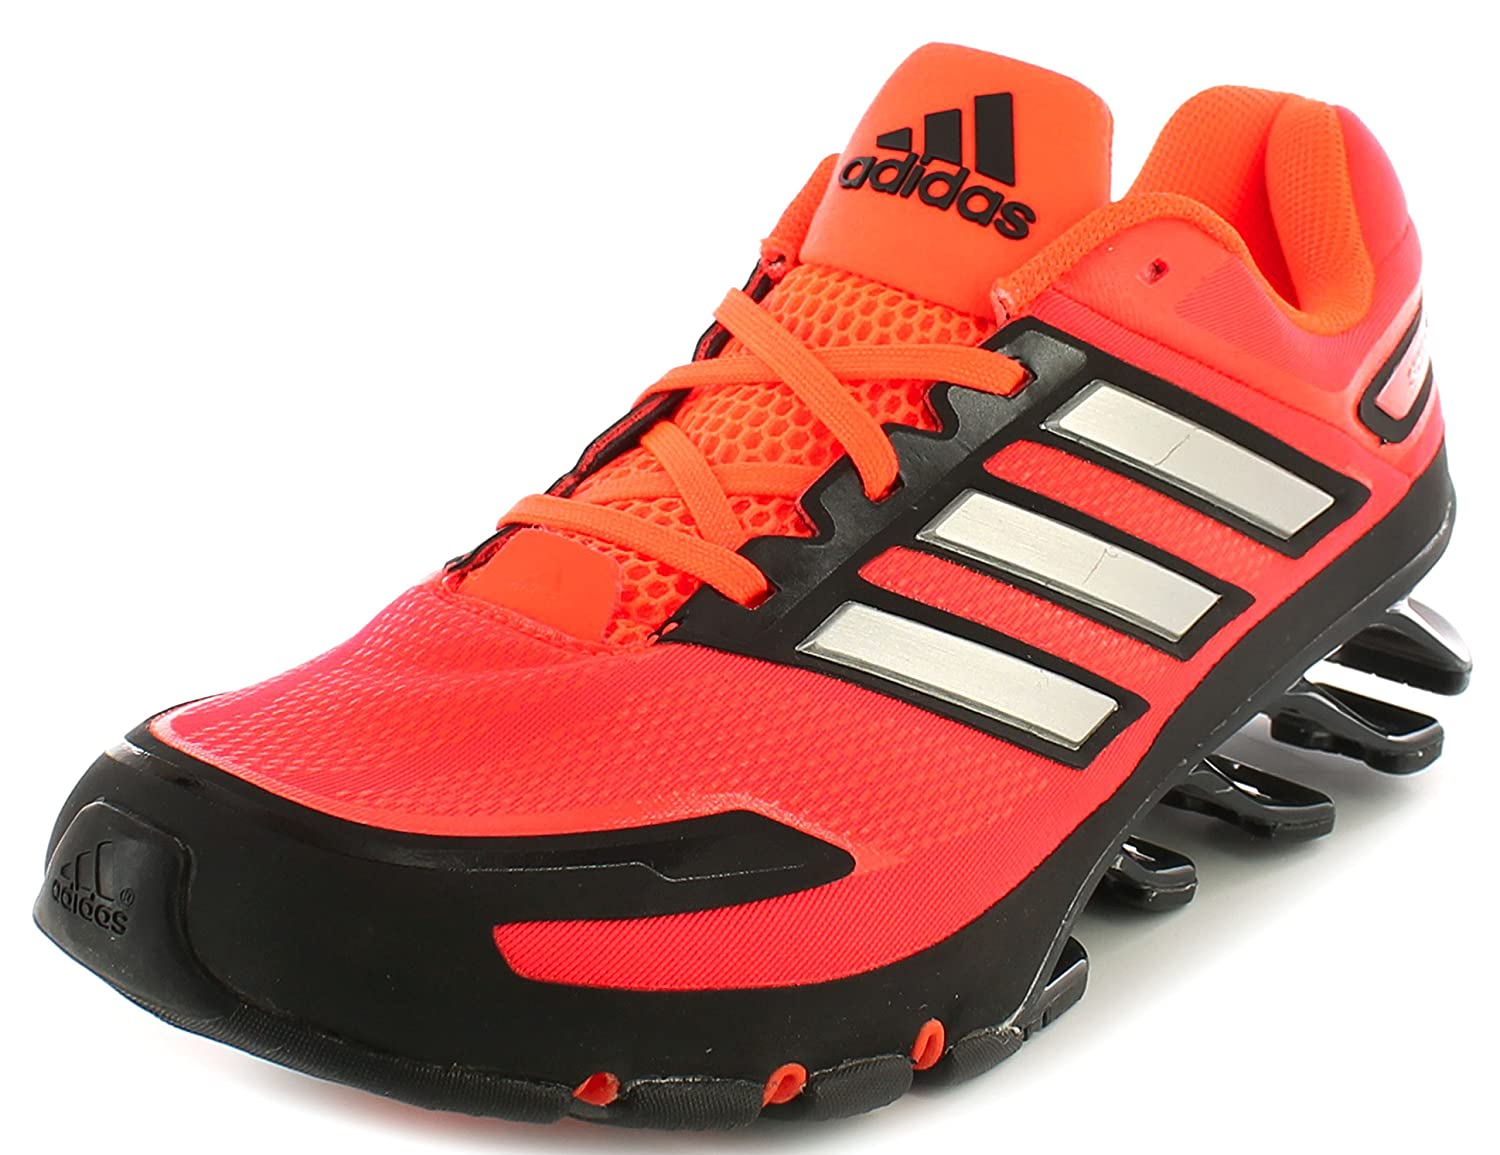 designer fashion 1efe3 c44b7 adidas New Mens Gents Red Performance Springblade Ignite Trainers. - Solar  Red Slvr Black - UK Size 8  Amazon.co.uk  Shoes   Bags